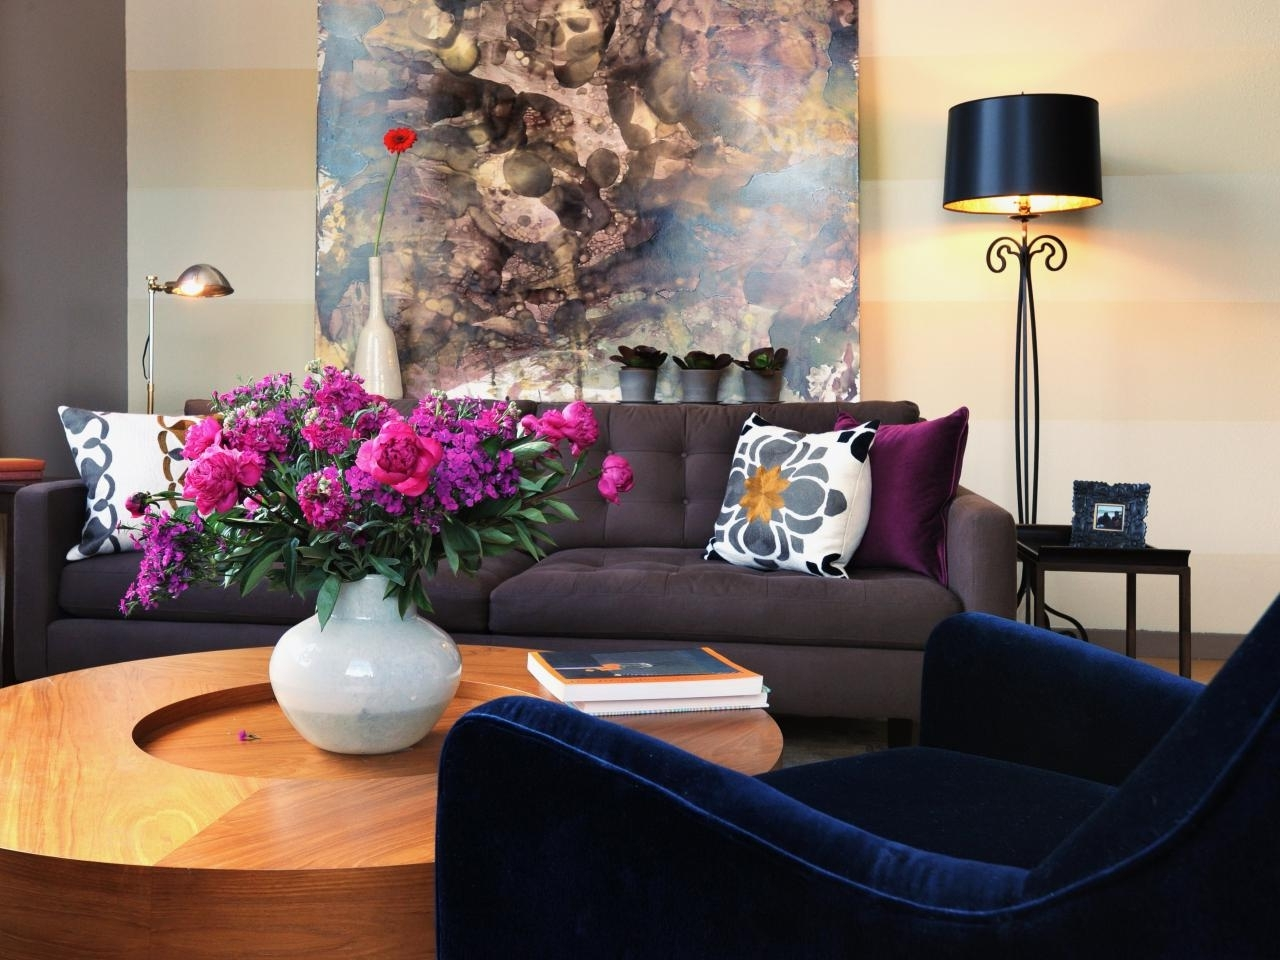 Different Style To Decorate Home With Blue Velvet Sofa With Well Known Dark Blue Sofas (View 6 of 15)